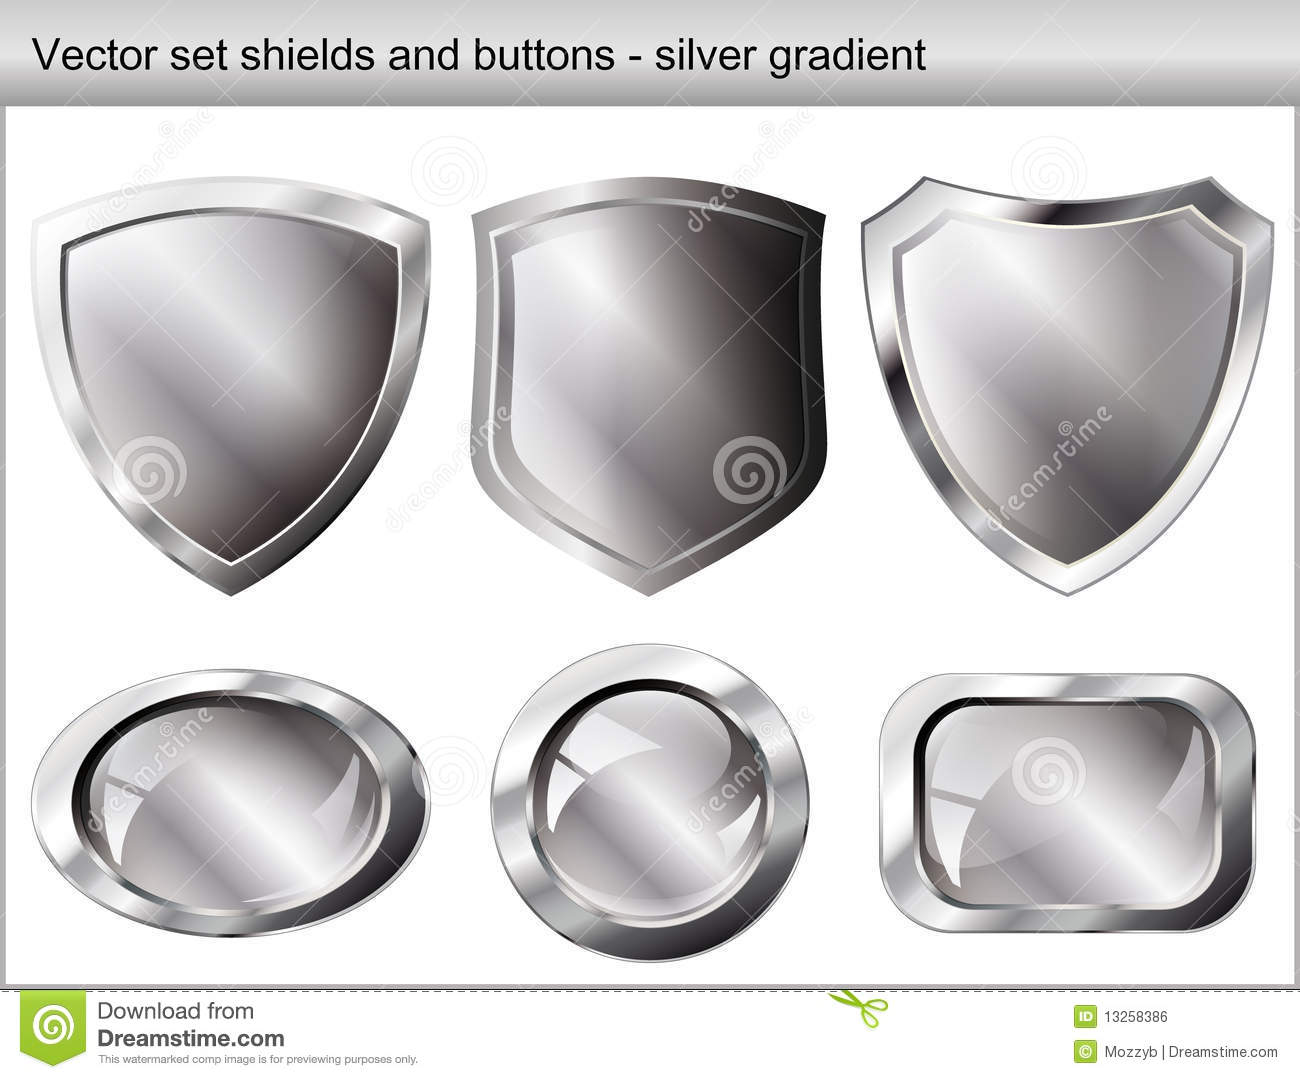 Vector illustration set. Shiny shield and button